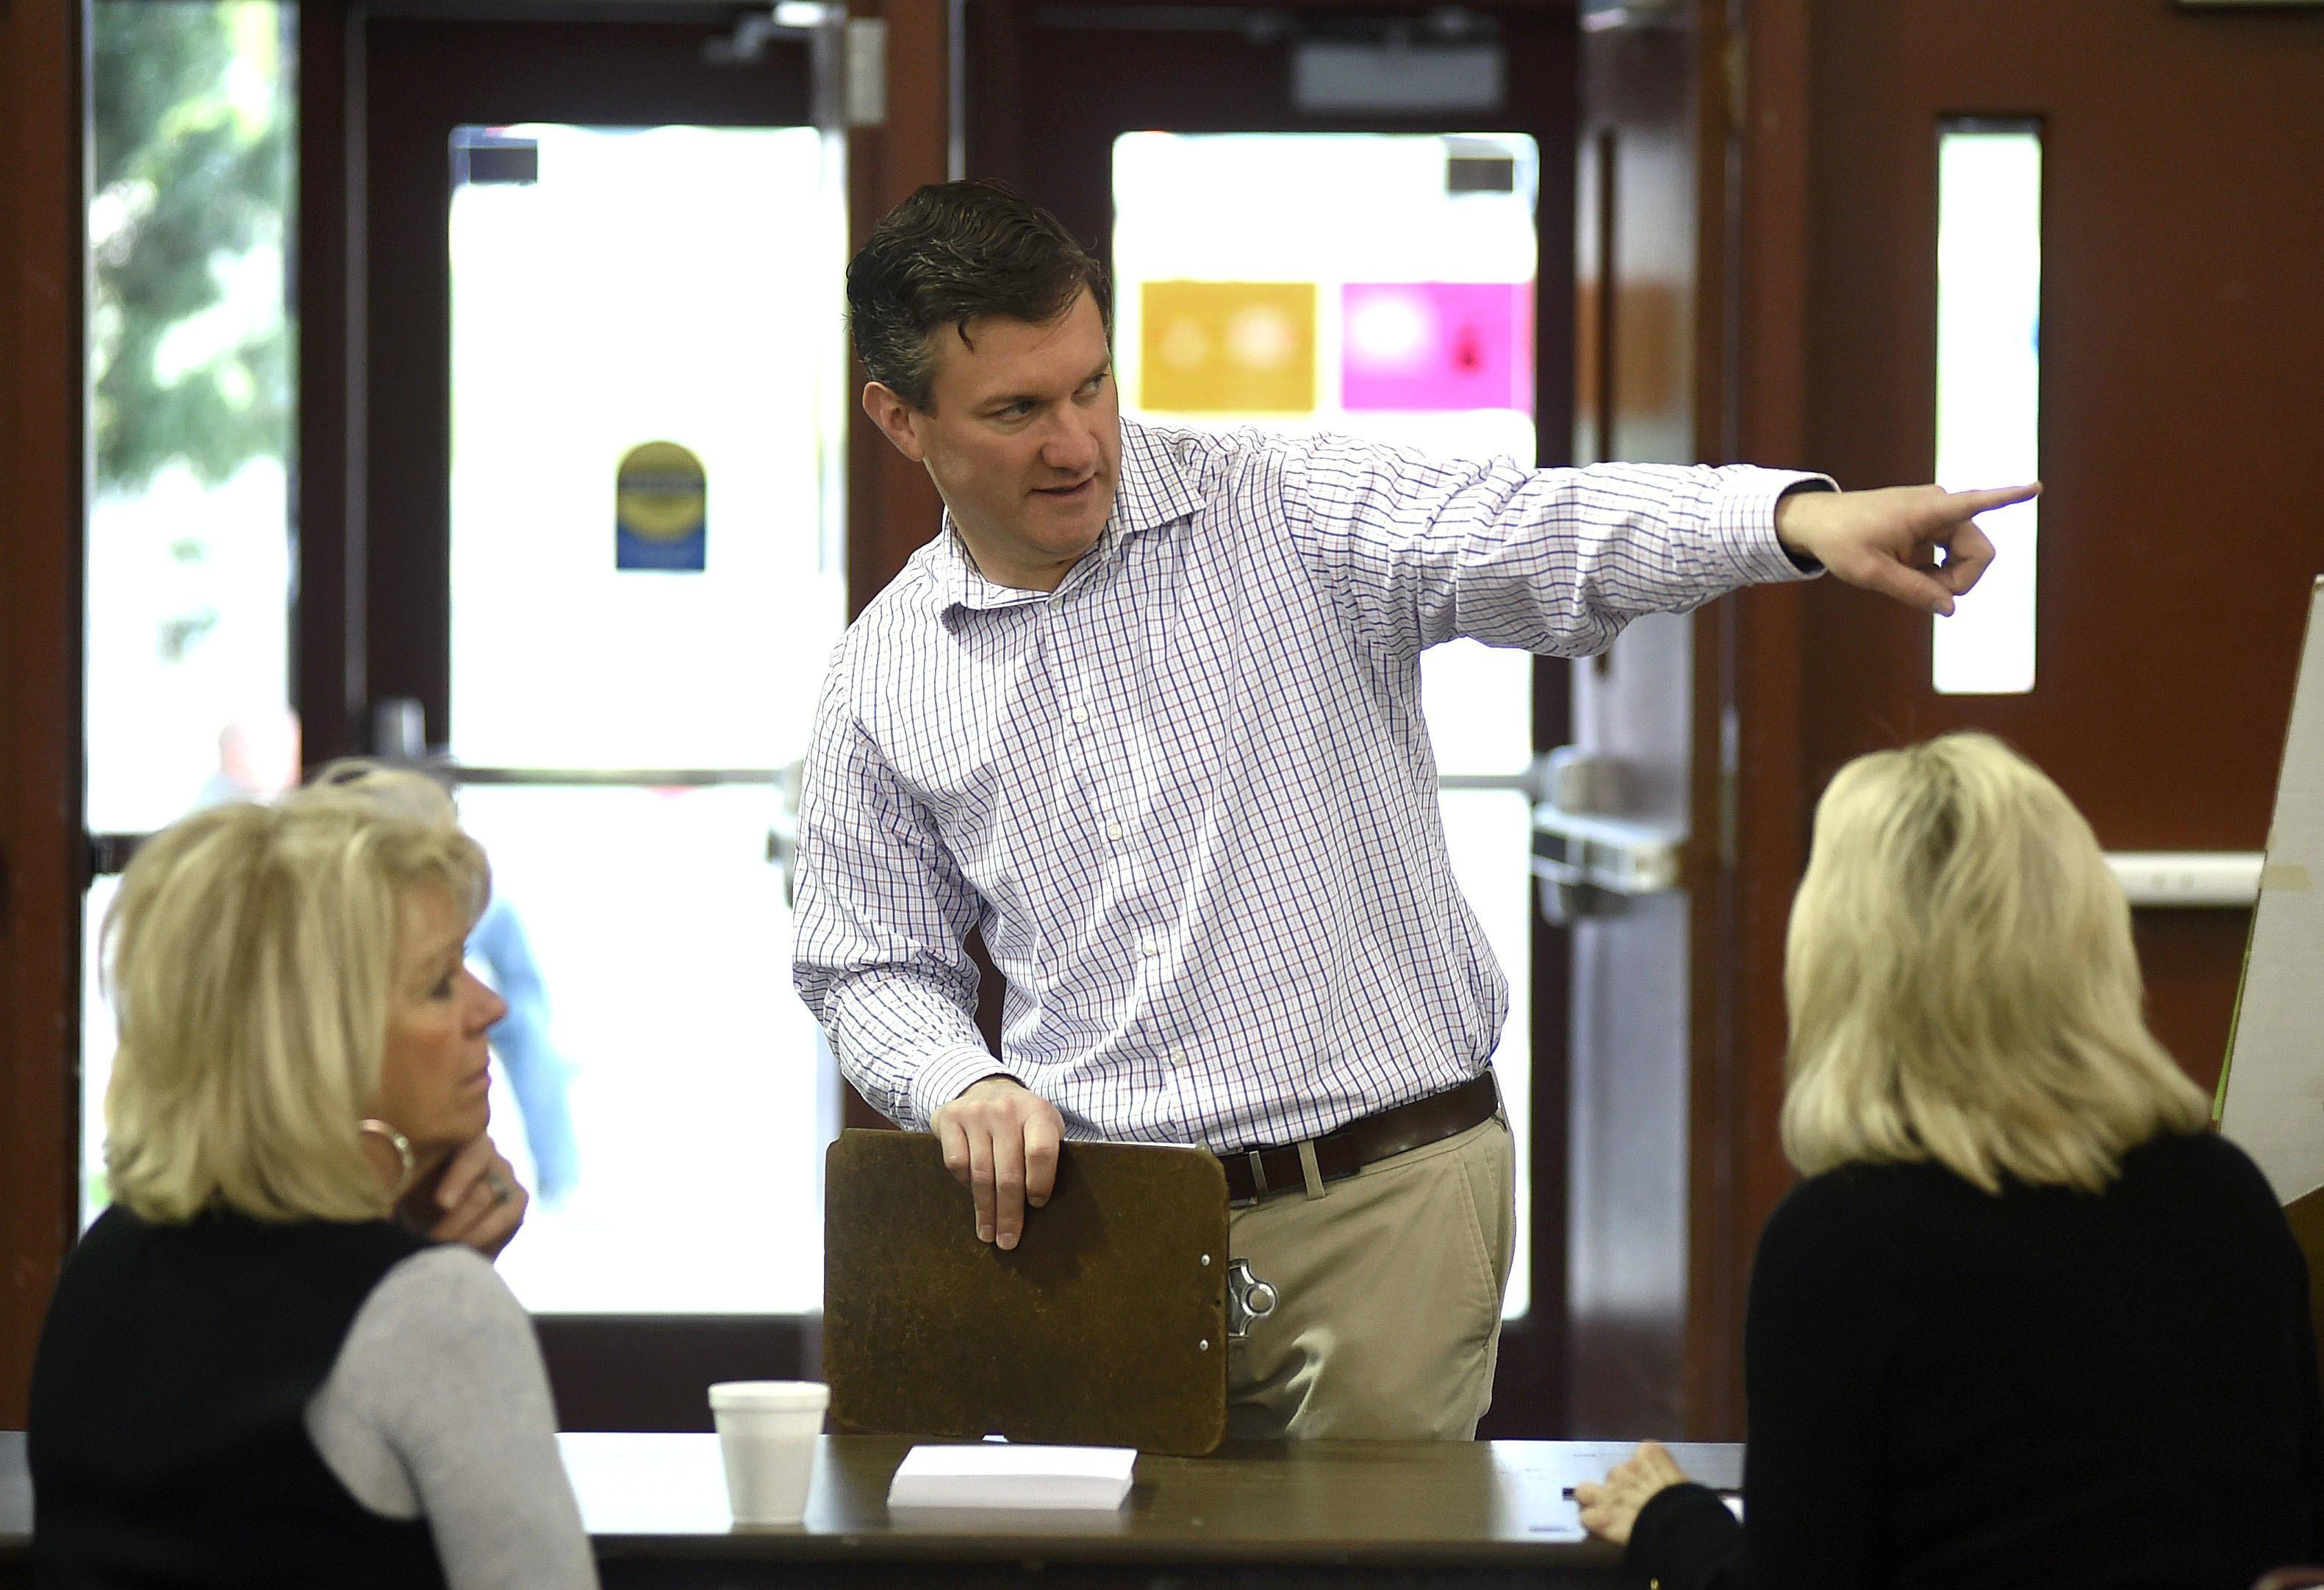 Yellowstone County Election Administrator Bret Rutherford briefs election staff at MetraPark Thursday, May 25, 2017, in Billings, Mont. (Larry Mayer /The Billings Gazette via AP)